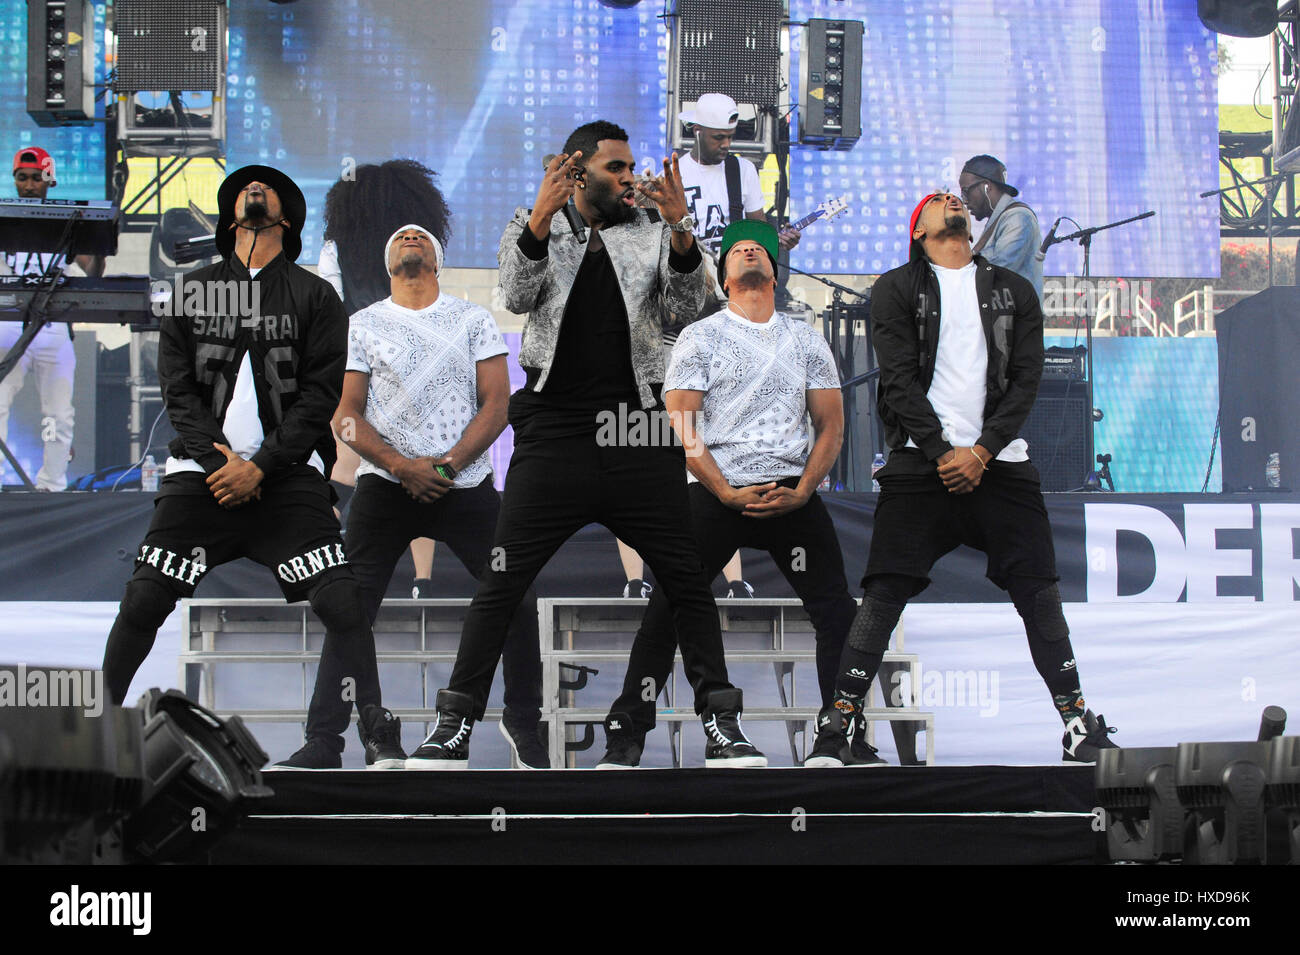 Singer Jason Derulo performs live concert at the 2015 KIIS FM Wango Tango at the StubHub Center on May 9th, 2015 - Stock Image